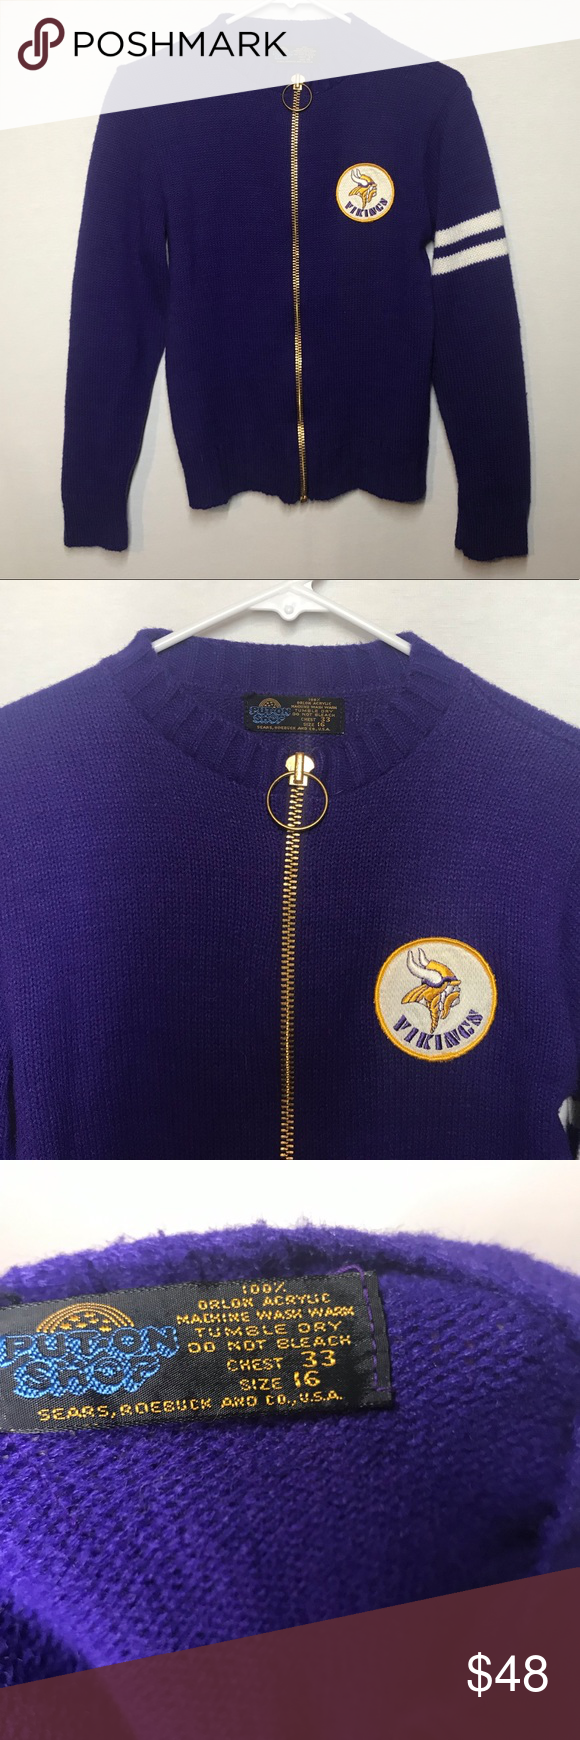 cheap for discount 1642b 1ca0c Vintage Sears Put-On Shop Vikings football Sweater Such a ...